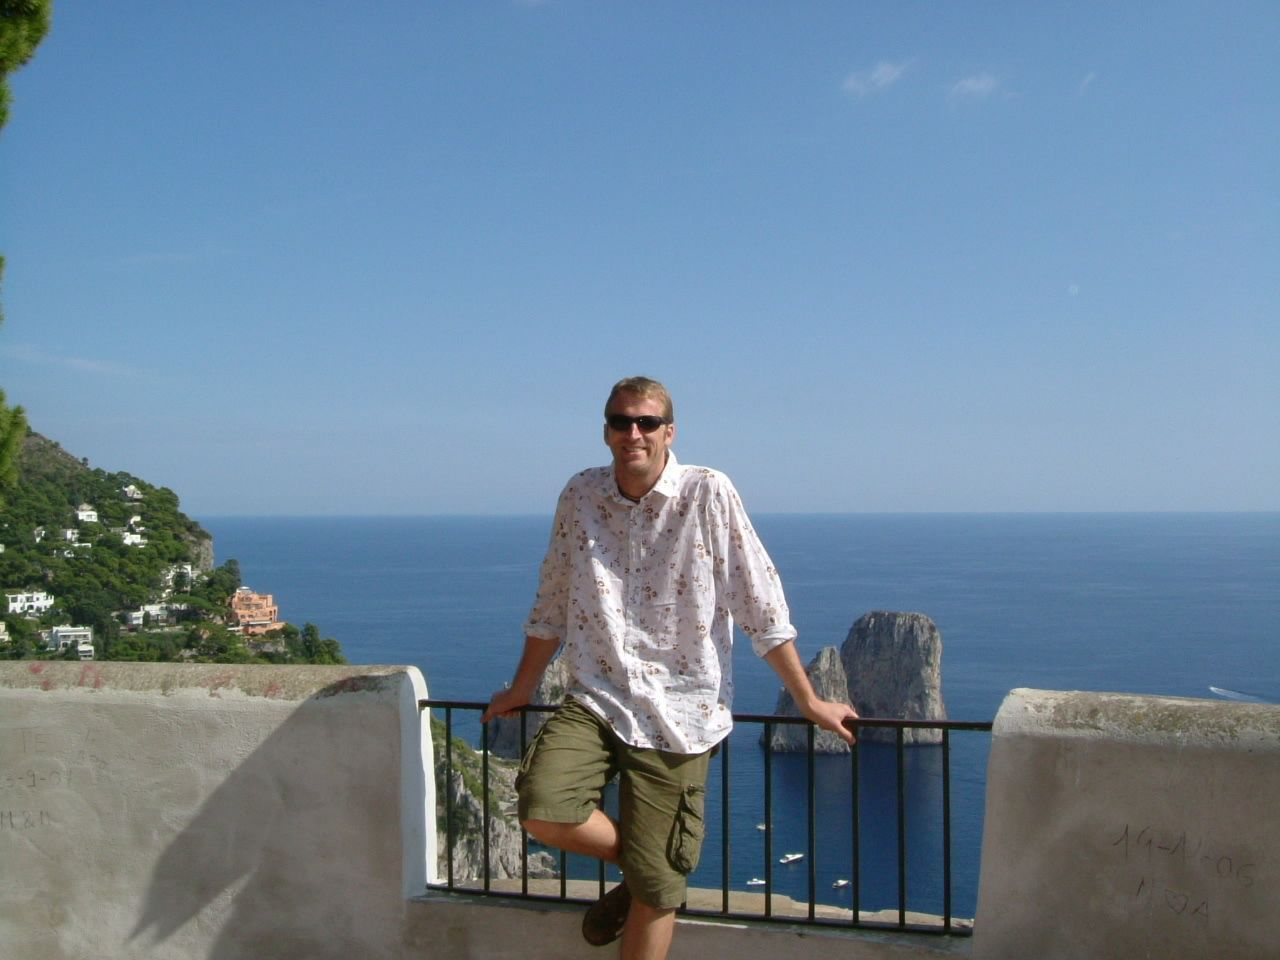 ama 2.jpg - Italy - Cilento and The Amalfi Coast - Guided Leisure Cycling Holiday - Italia Leisure and Family Cycling